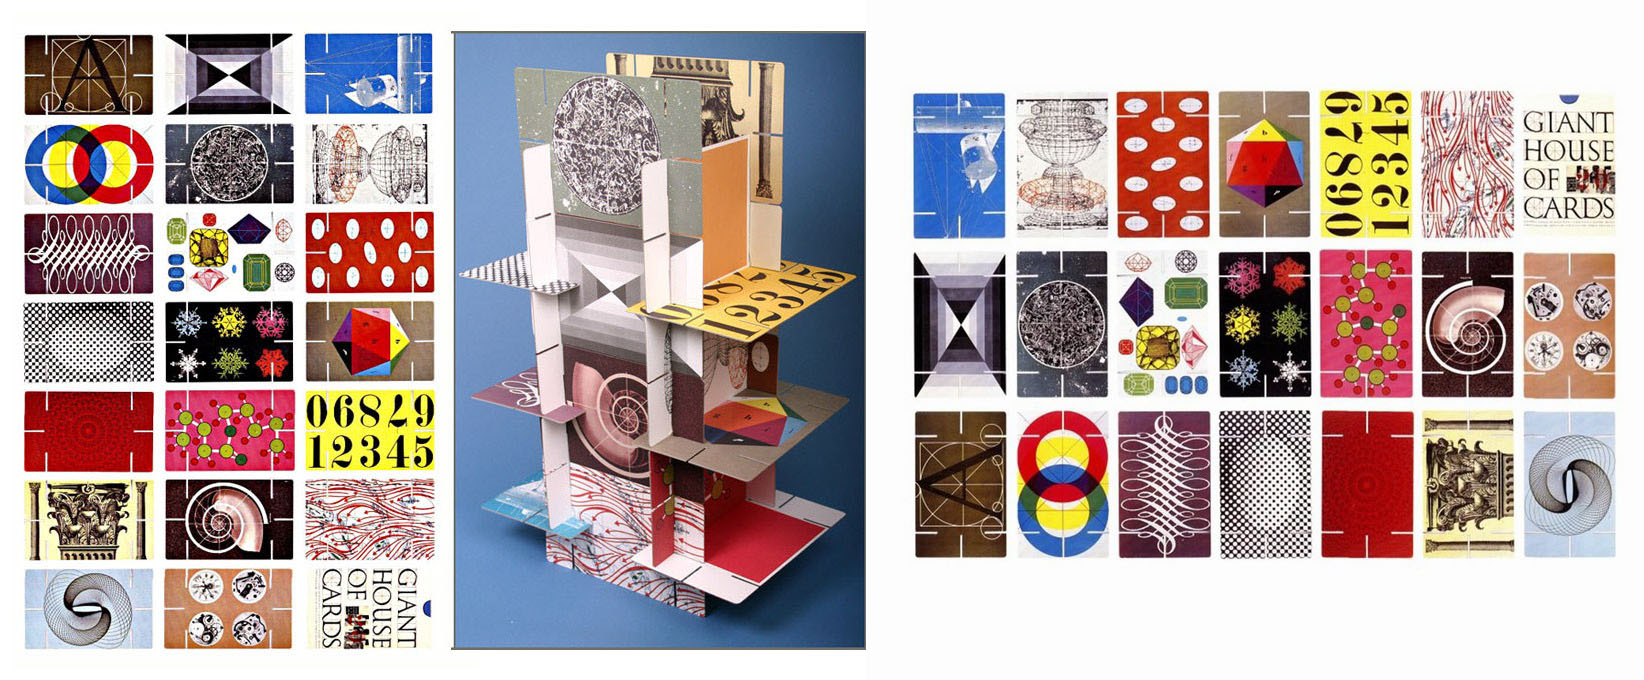 Eames House of Cards – Precedent for Board Game Cards – (RSA)